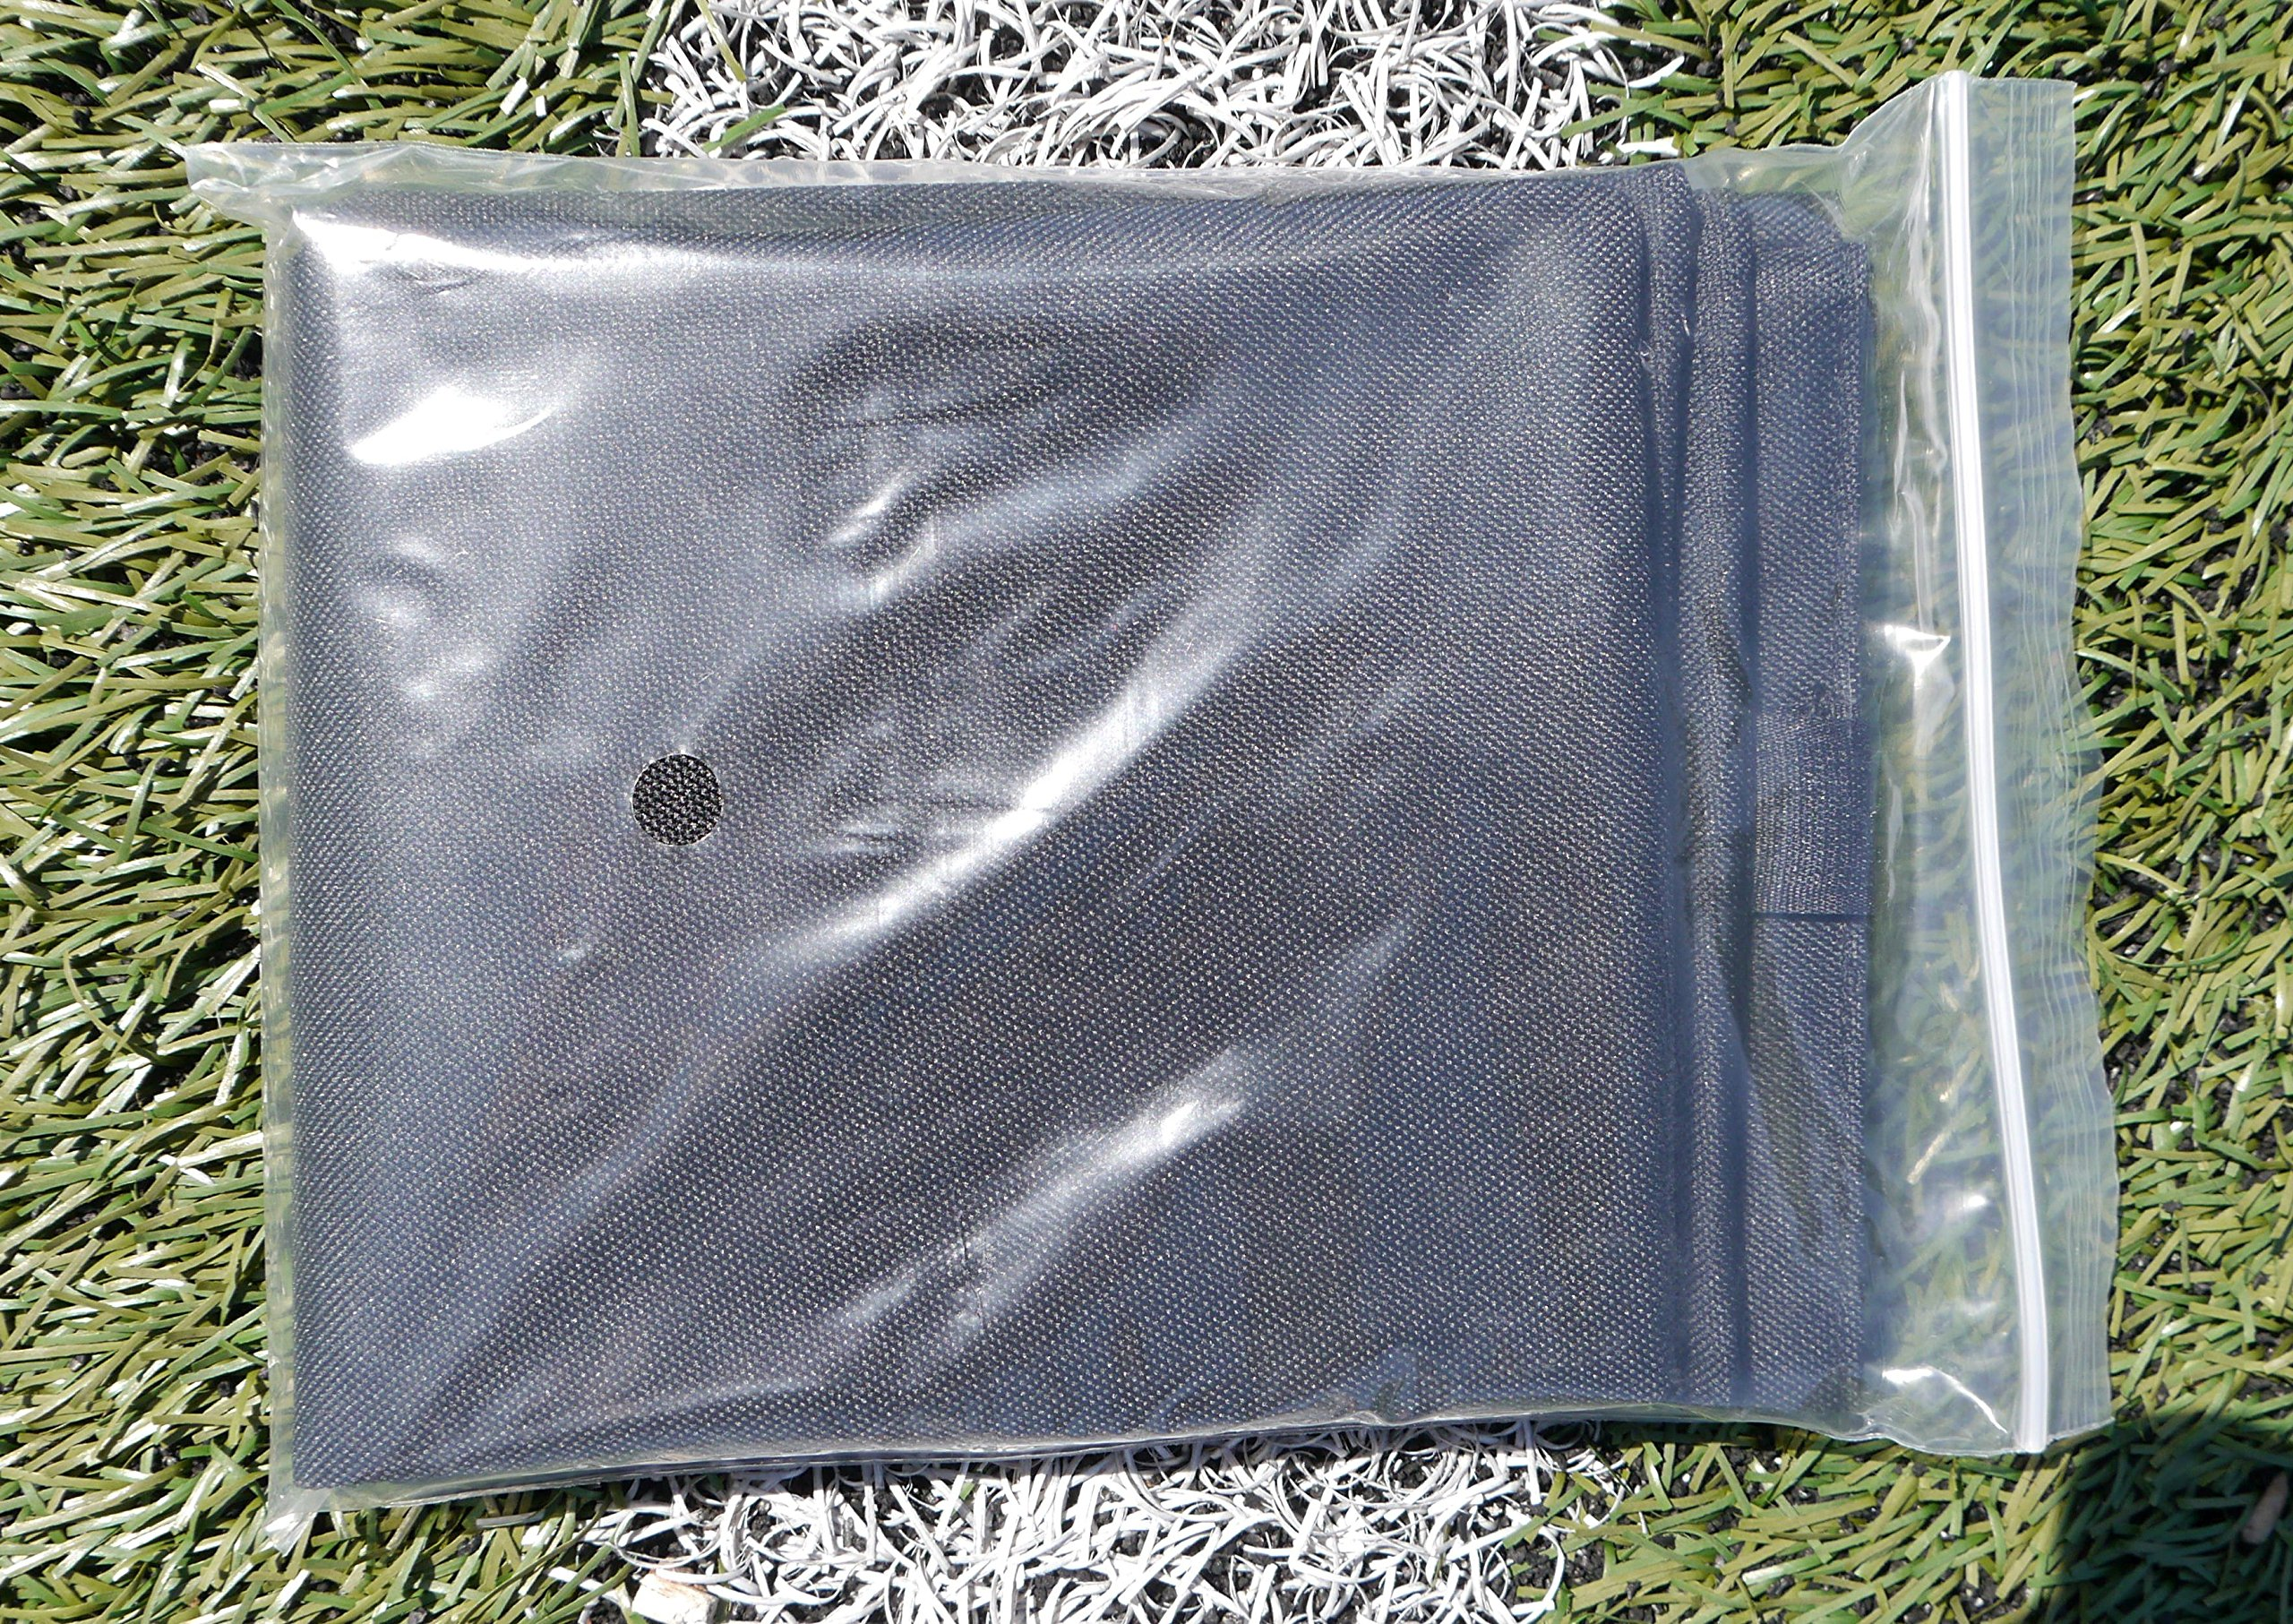 Spruce Athletic Sandbags (Set of 3) for pop up goals and other sports equipment by Spruce Athletic (Image #1)